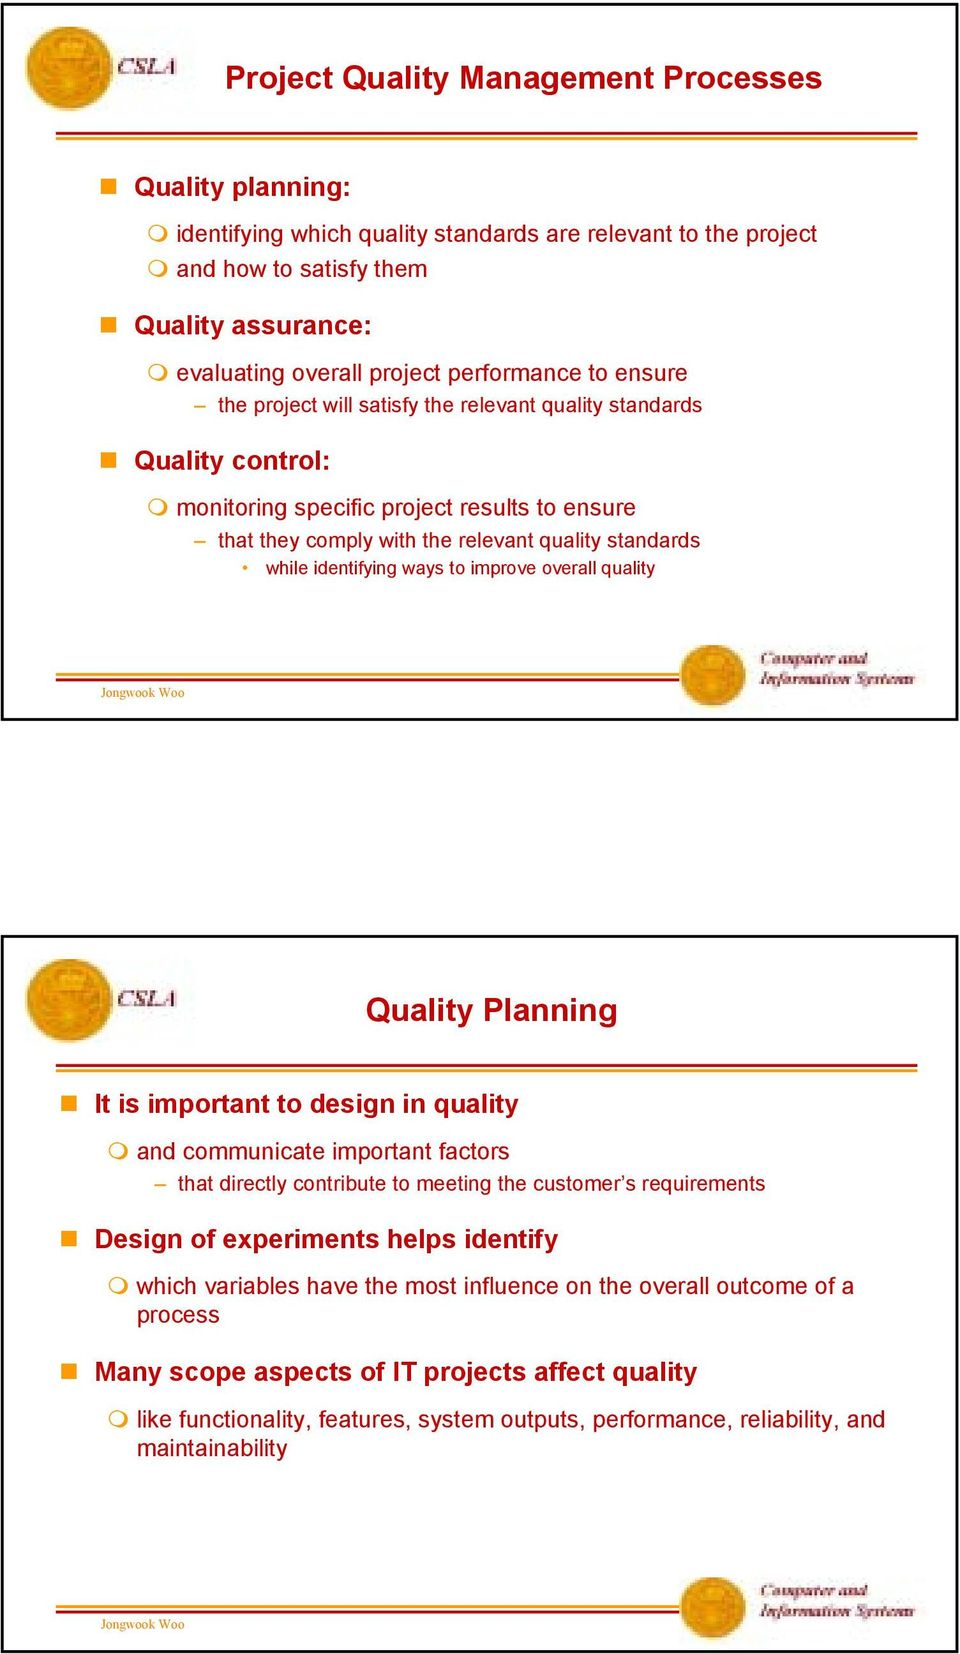 identifying ways to improve overall quality Quality Planning It is important to design in quality and communicate important factors that directly contribute to meeting the customer s requirements